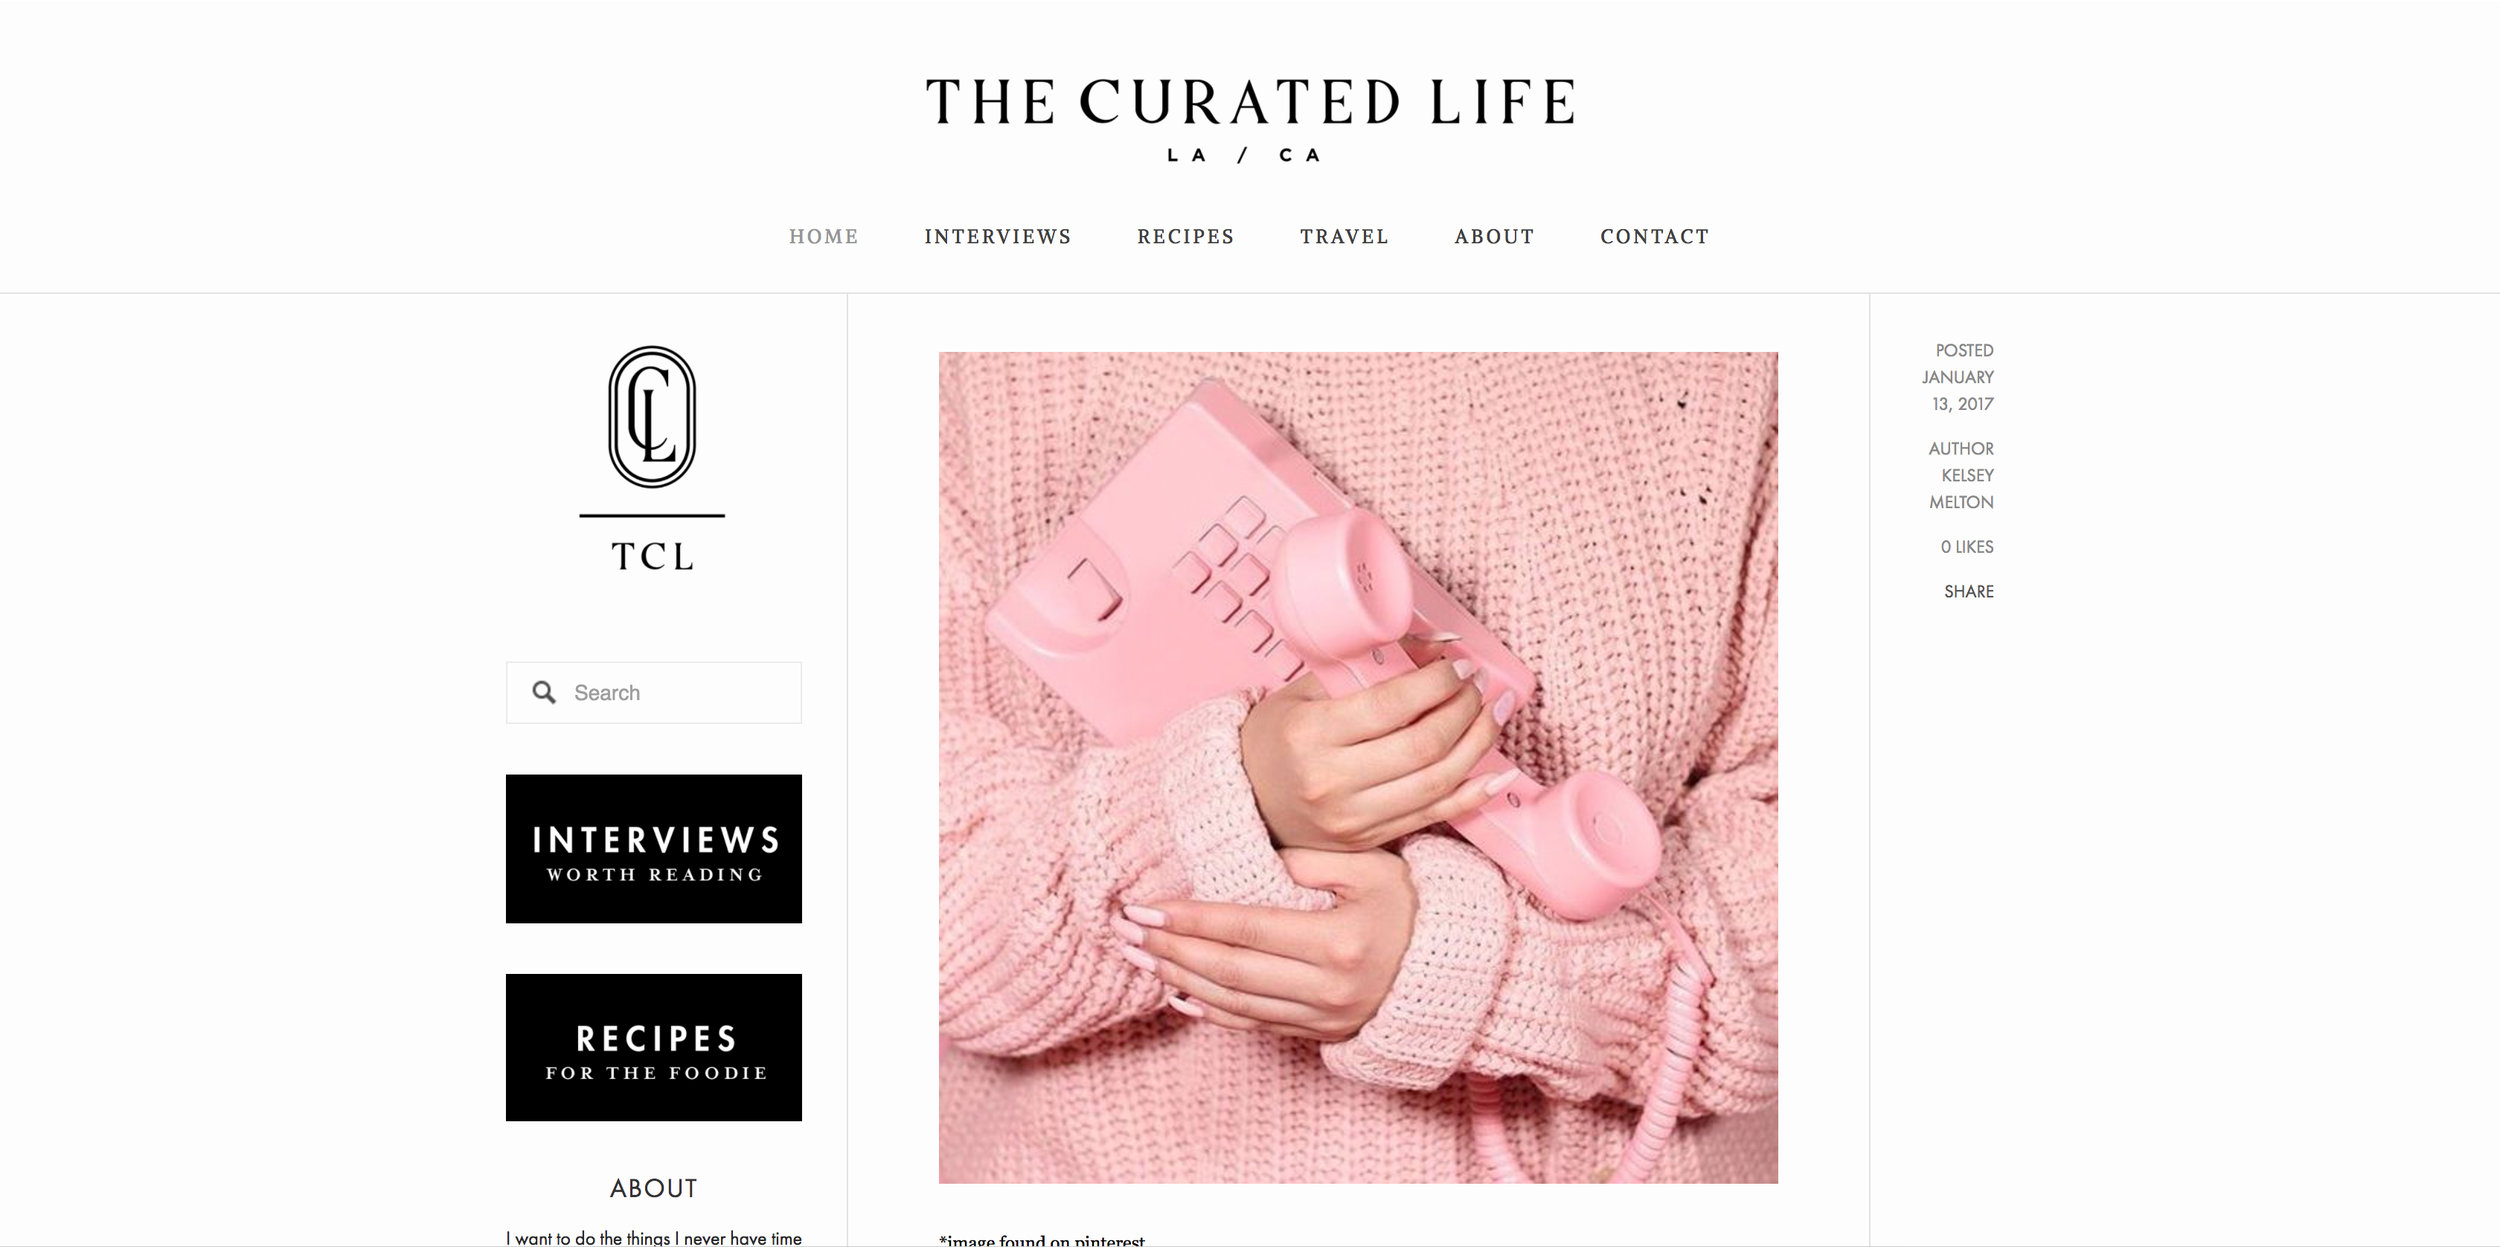 INTERVIEW - The Curated Life